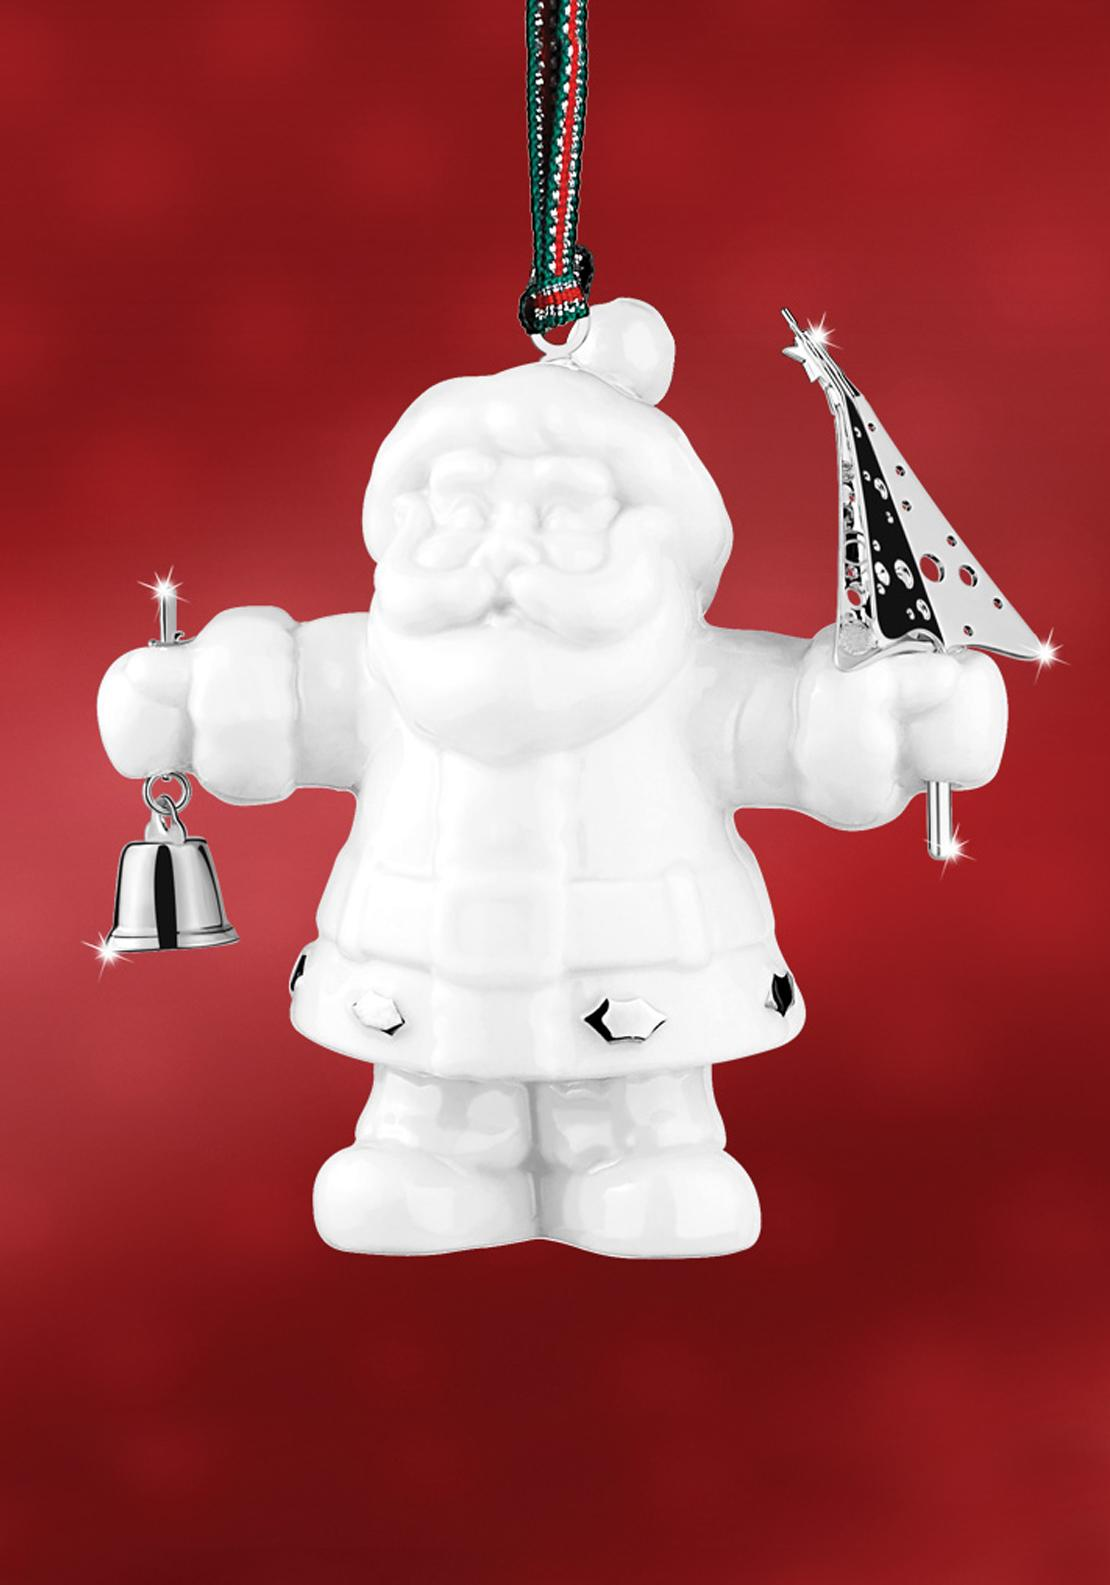 Newbridge Christmas Silver Ceramic Santa Claus